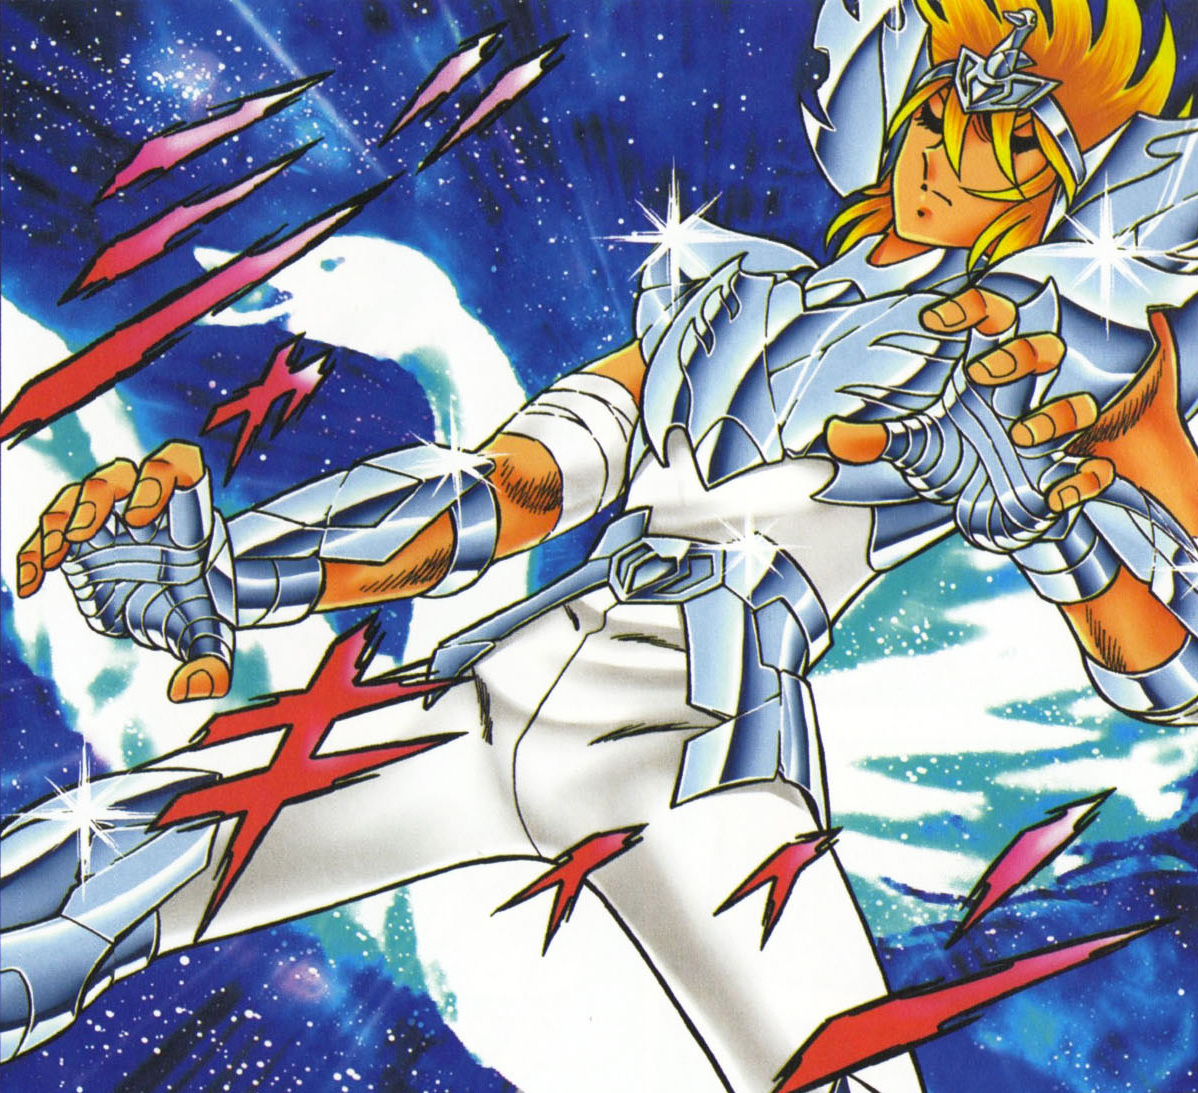 Hyōga de Cygnus | Saint Seiya Wiki | FANDOM powered by Wikia